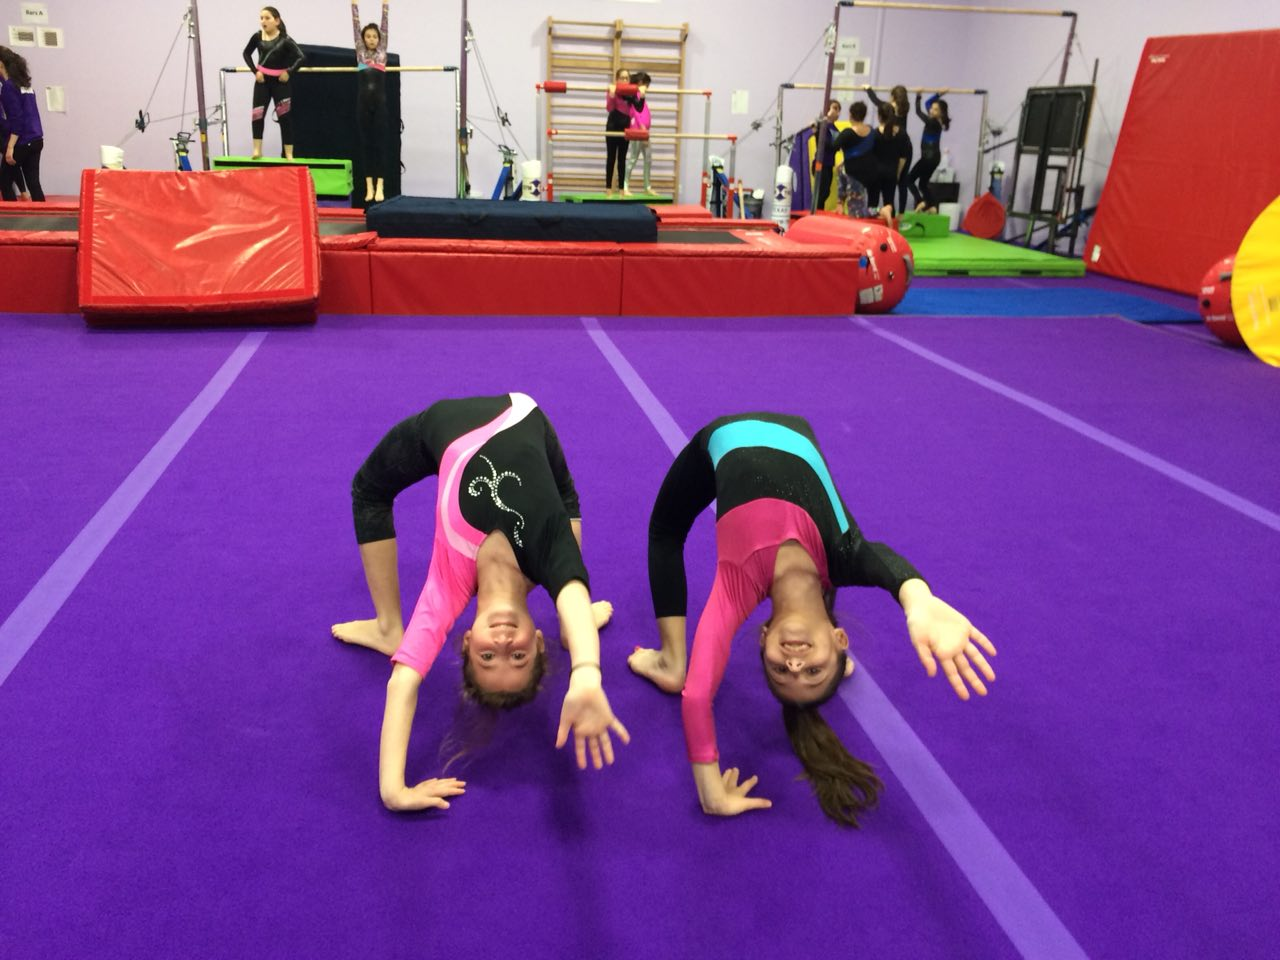 Recreational Track - These classes are the heartbeat of every gymnastics center. Designed to teach fundamental gymnastics skills in a fun and non-competitive setting, recreational classes are geared for children of all ages and levels who wish to experience the joy of this wonderful sport. No previous skill or experience necessary.